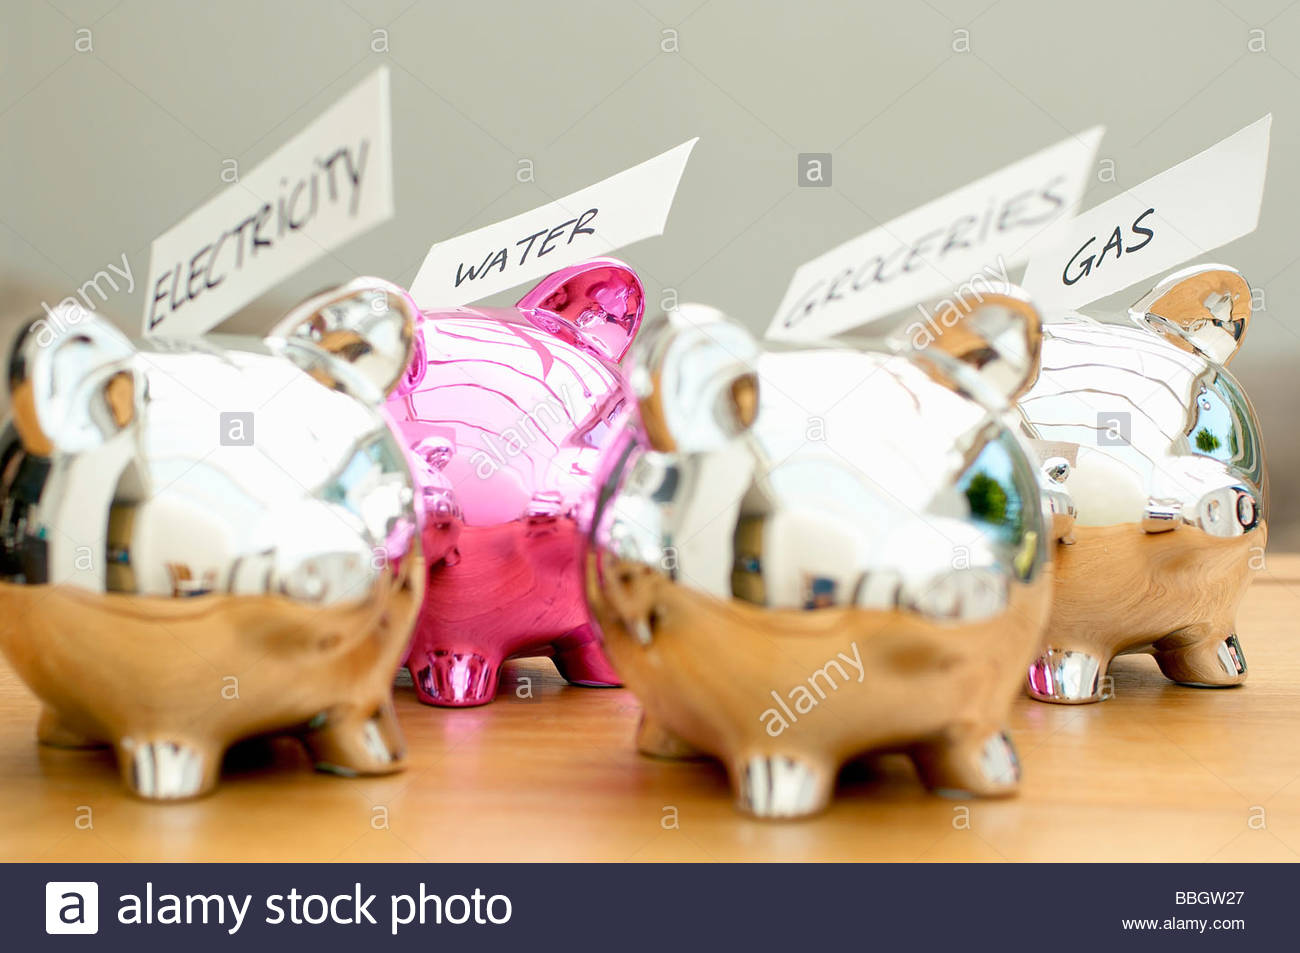 Four piggybanks with labels, focus on piggybanks with water and gas label, close-up, Den Haag, Netherlands - Stock Image